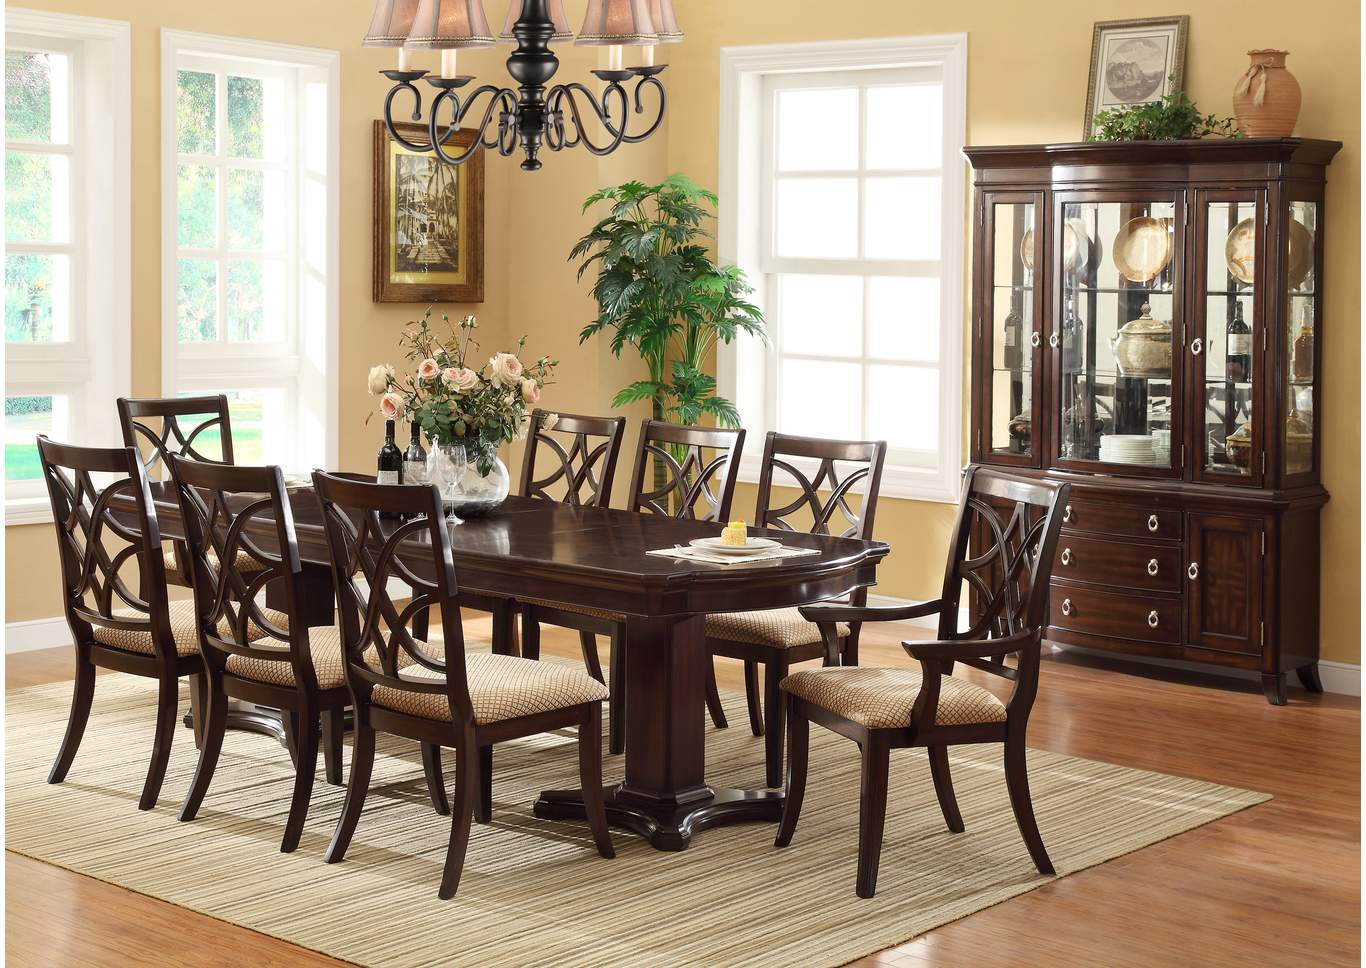 ivan smith katherine rectangular dining room table w 6